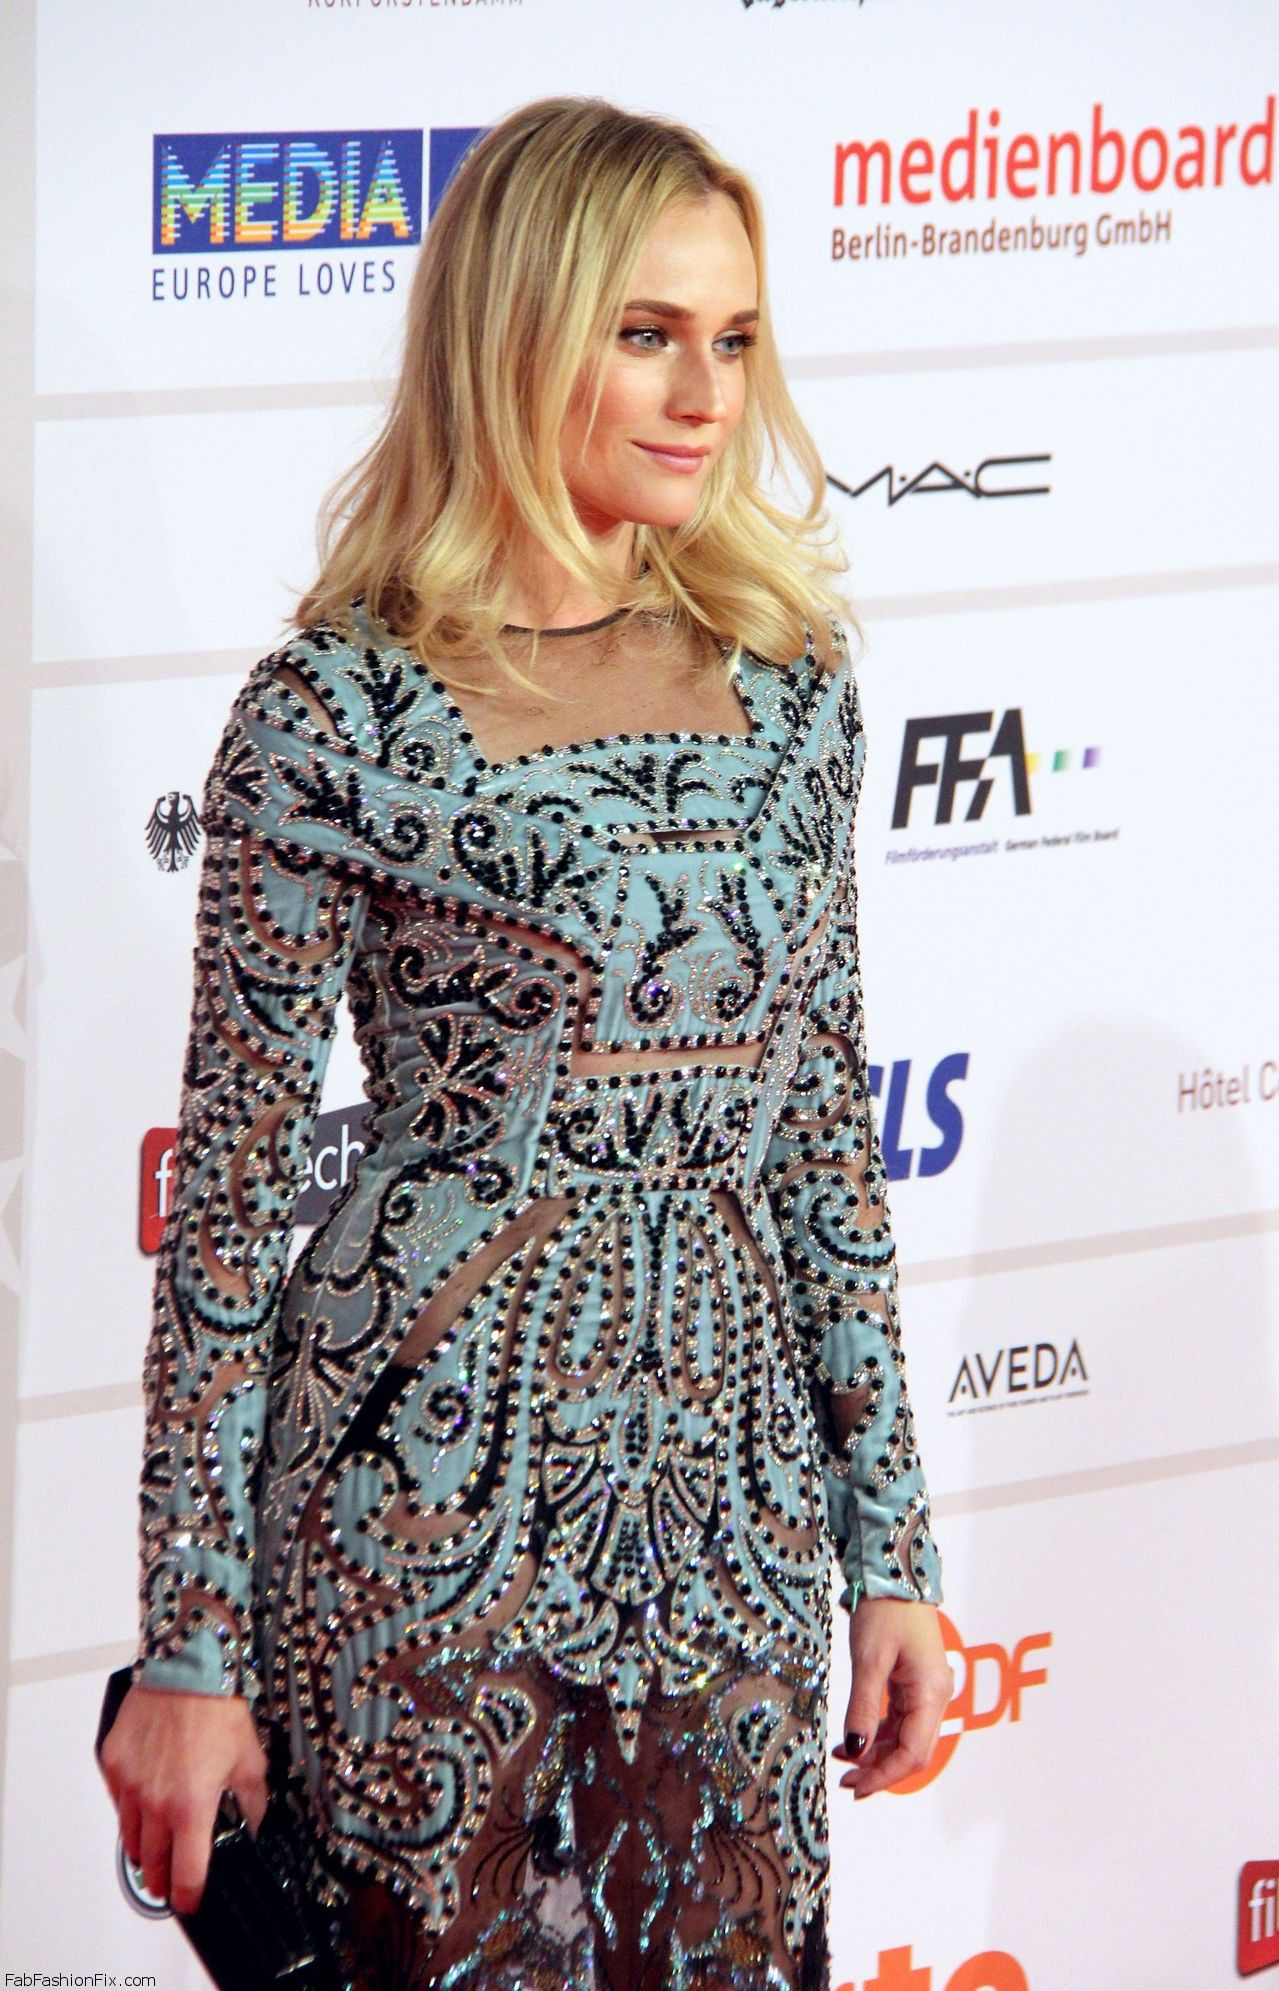 Diane_Kruger_European_Film_Awards120713_tcc_3